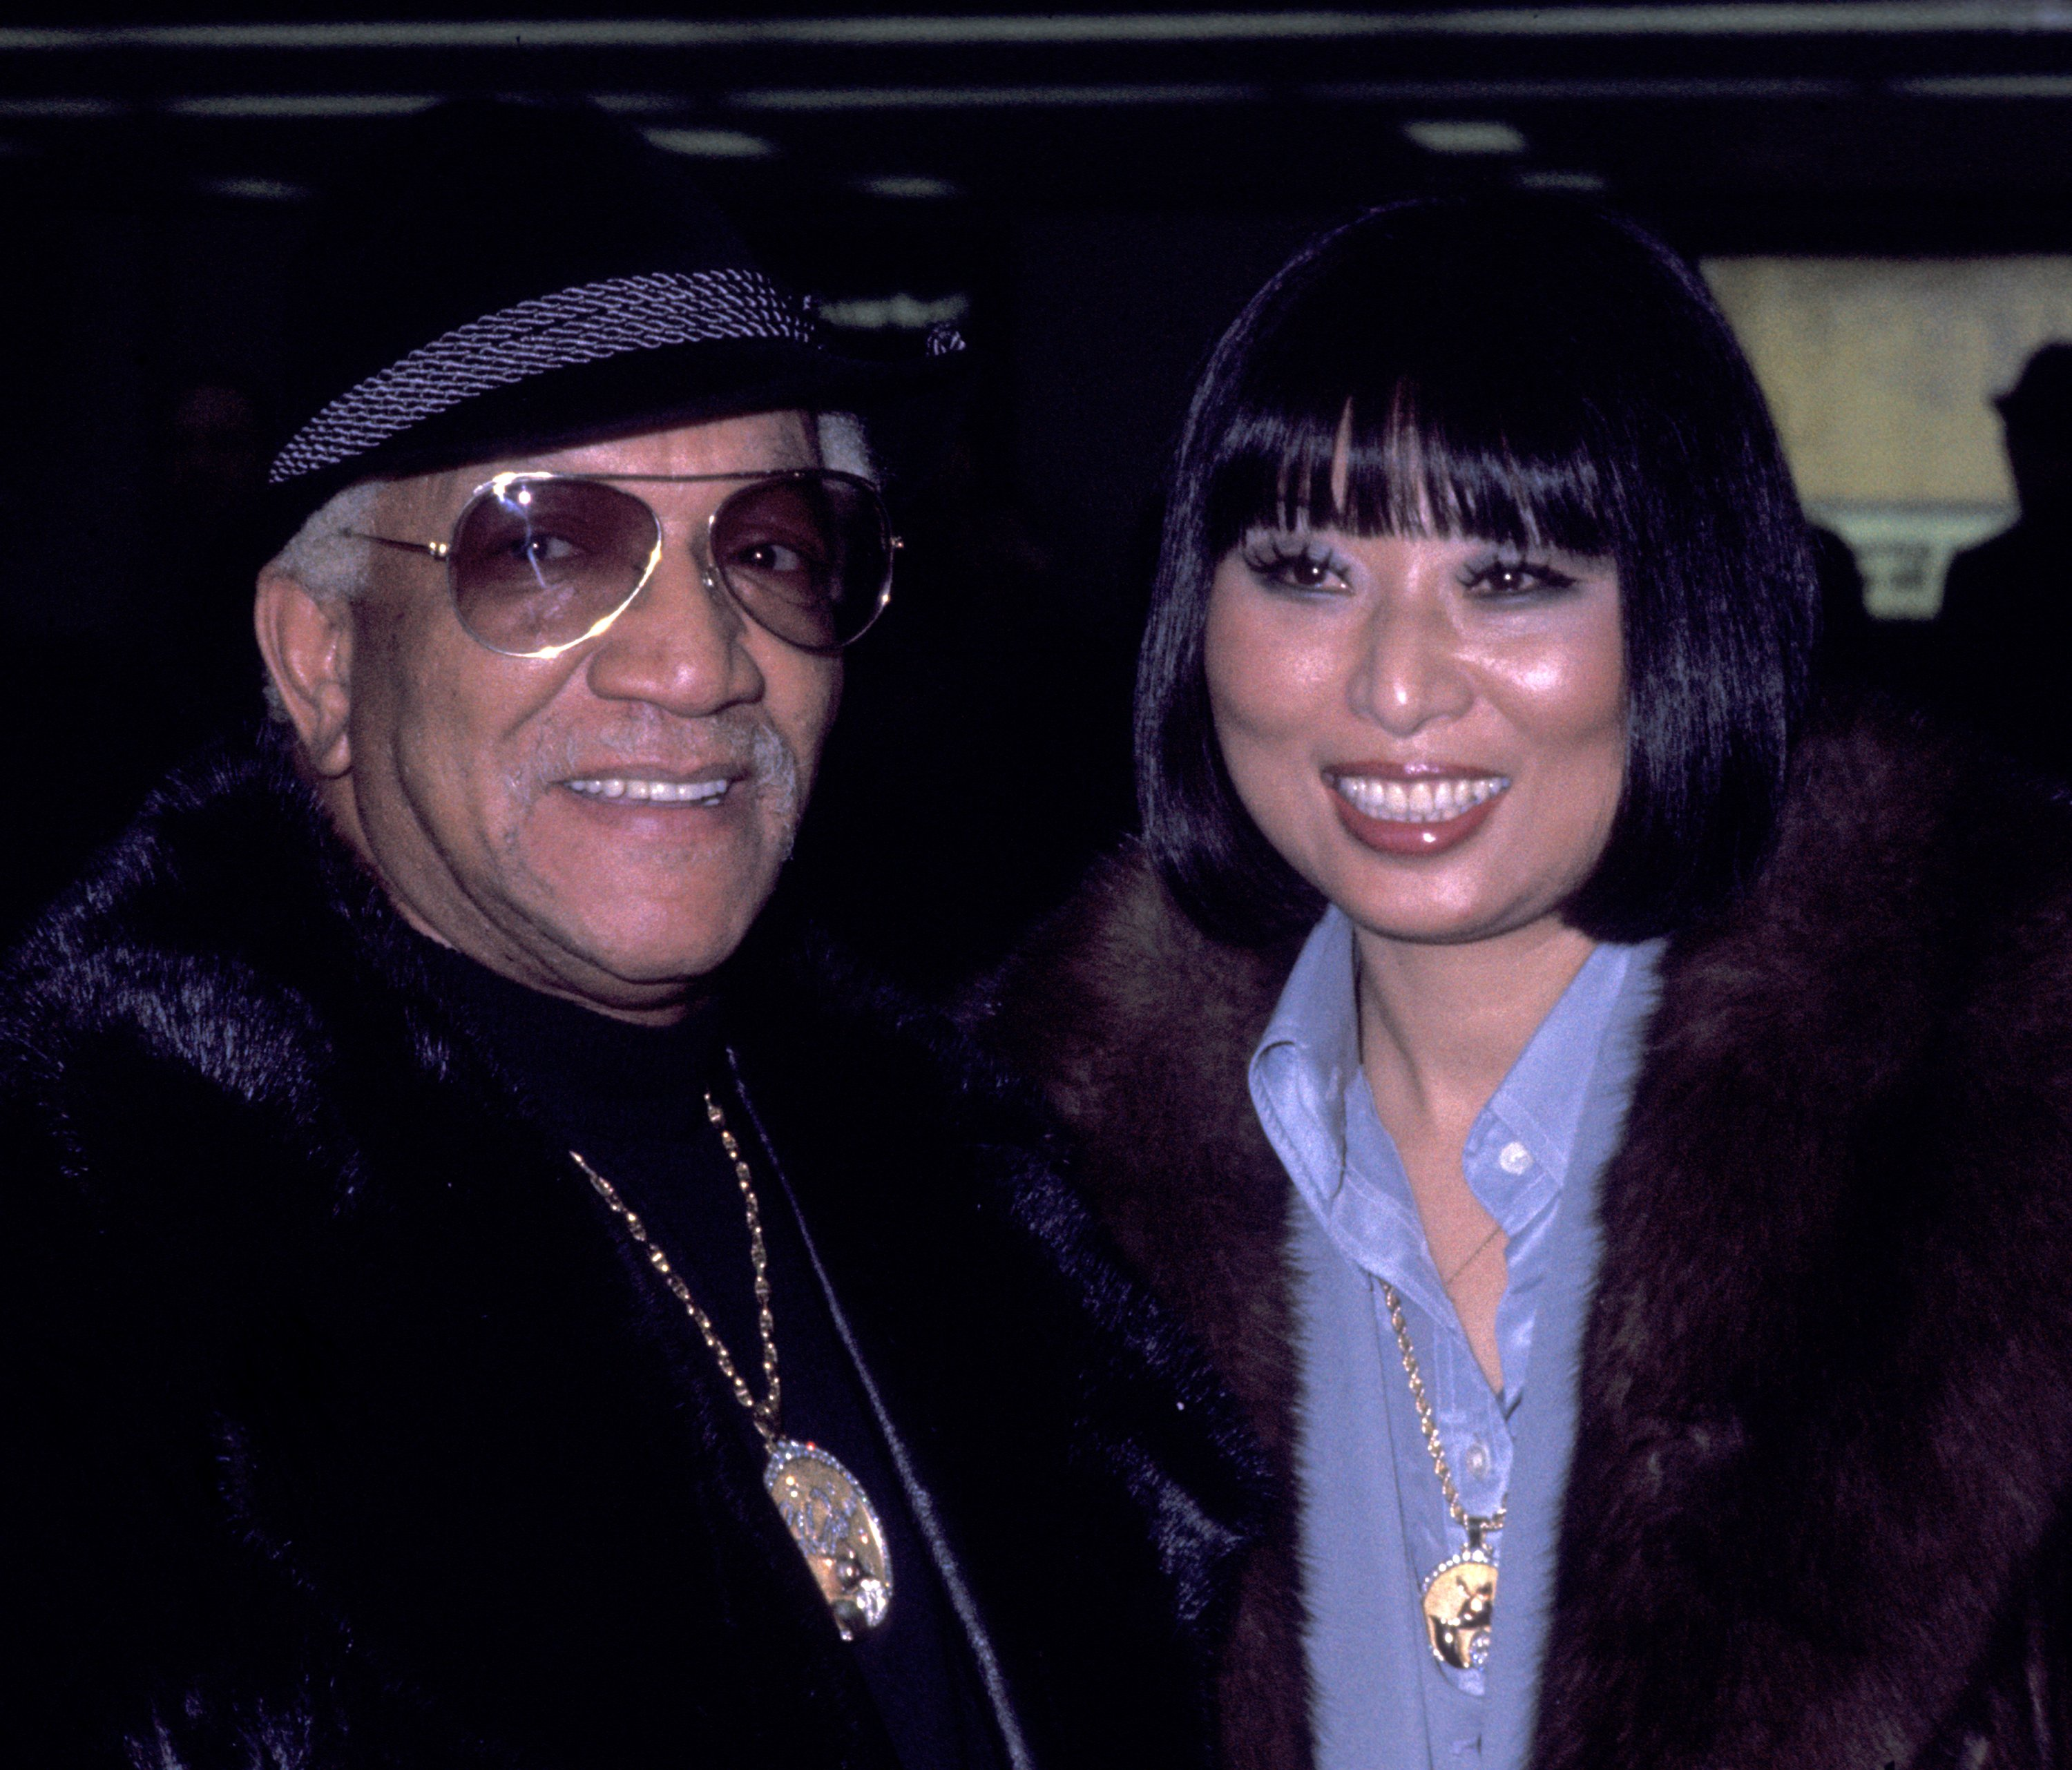 Redd Foxx and wife Yun Chi Chung at Dulles International Airport on January 18, 1977 in Washington, D.C. | Photo: Getty Images